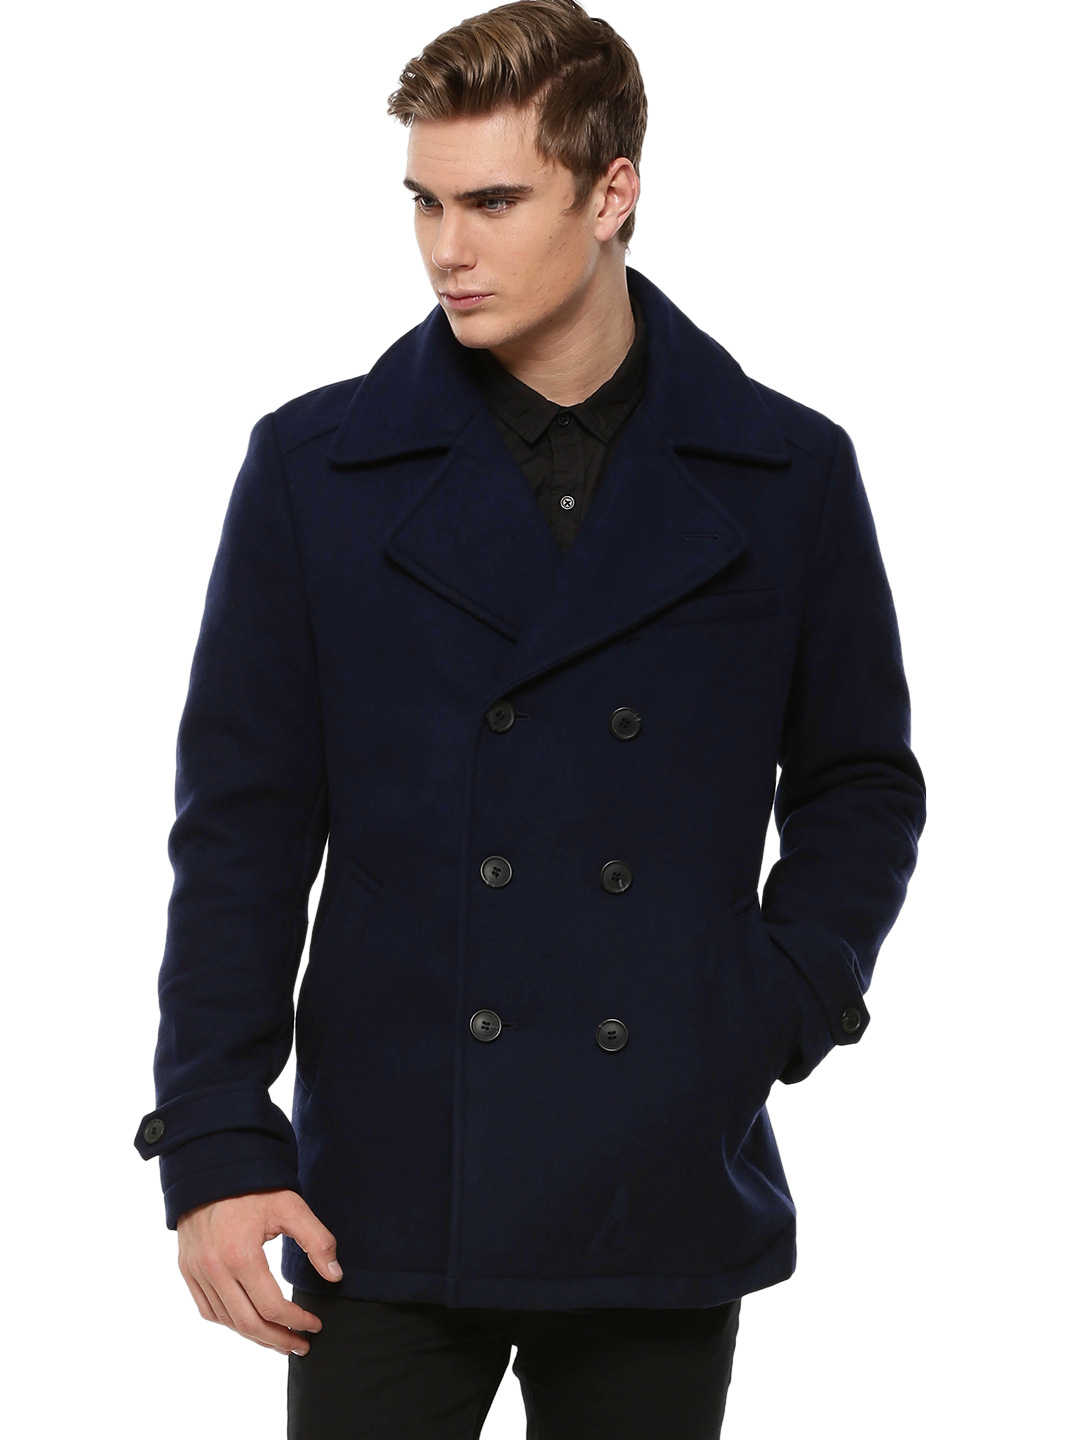 Selected Homme Night Sky Notched Collar Jacket 1